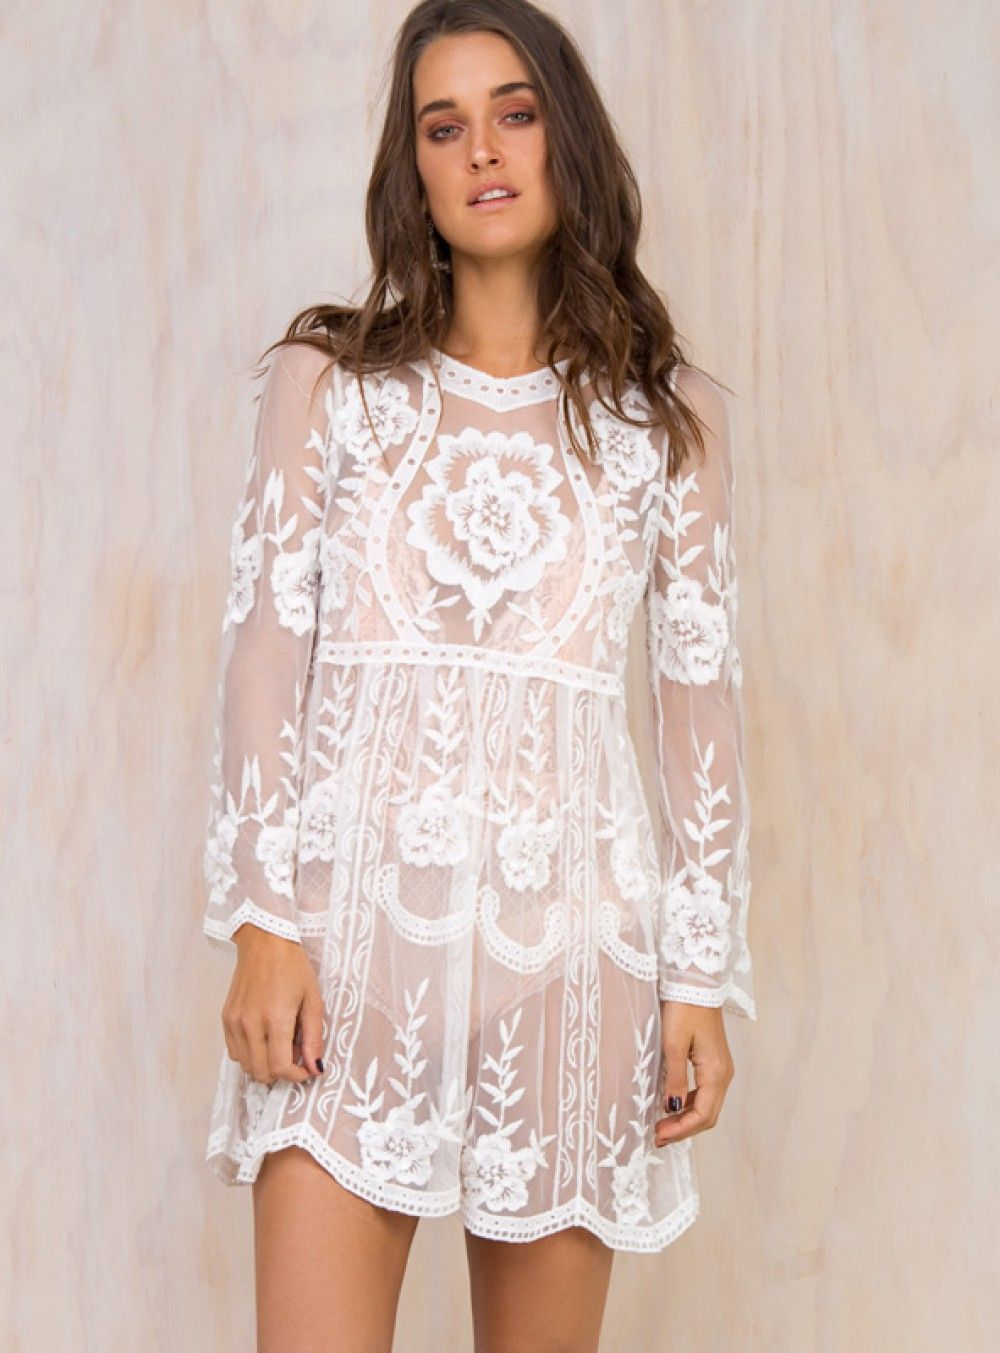 Lace dress cover up  Delilah Long Sleeve Lace Mini Dress perfect beach coverup  dress